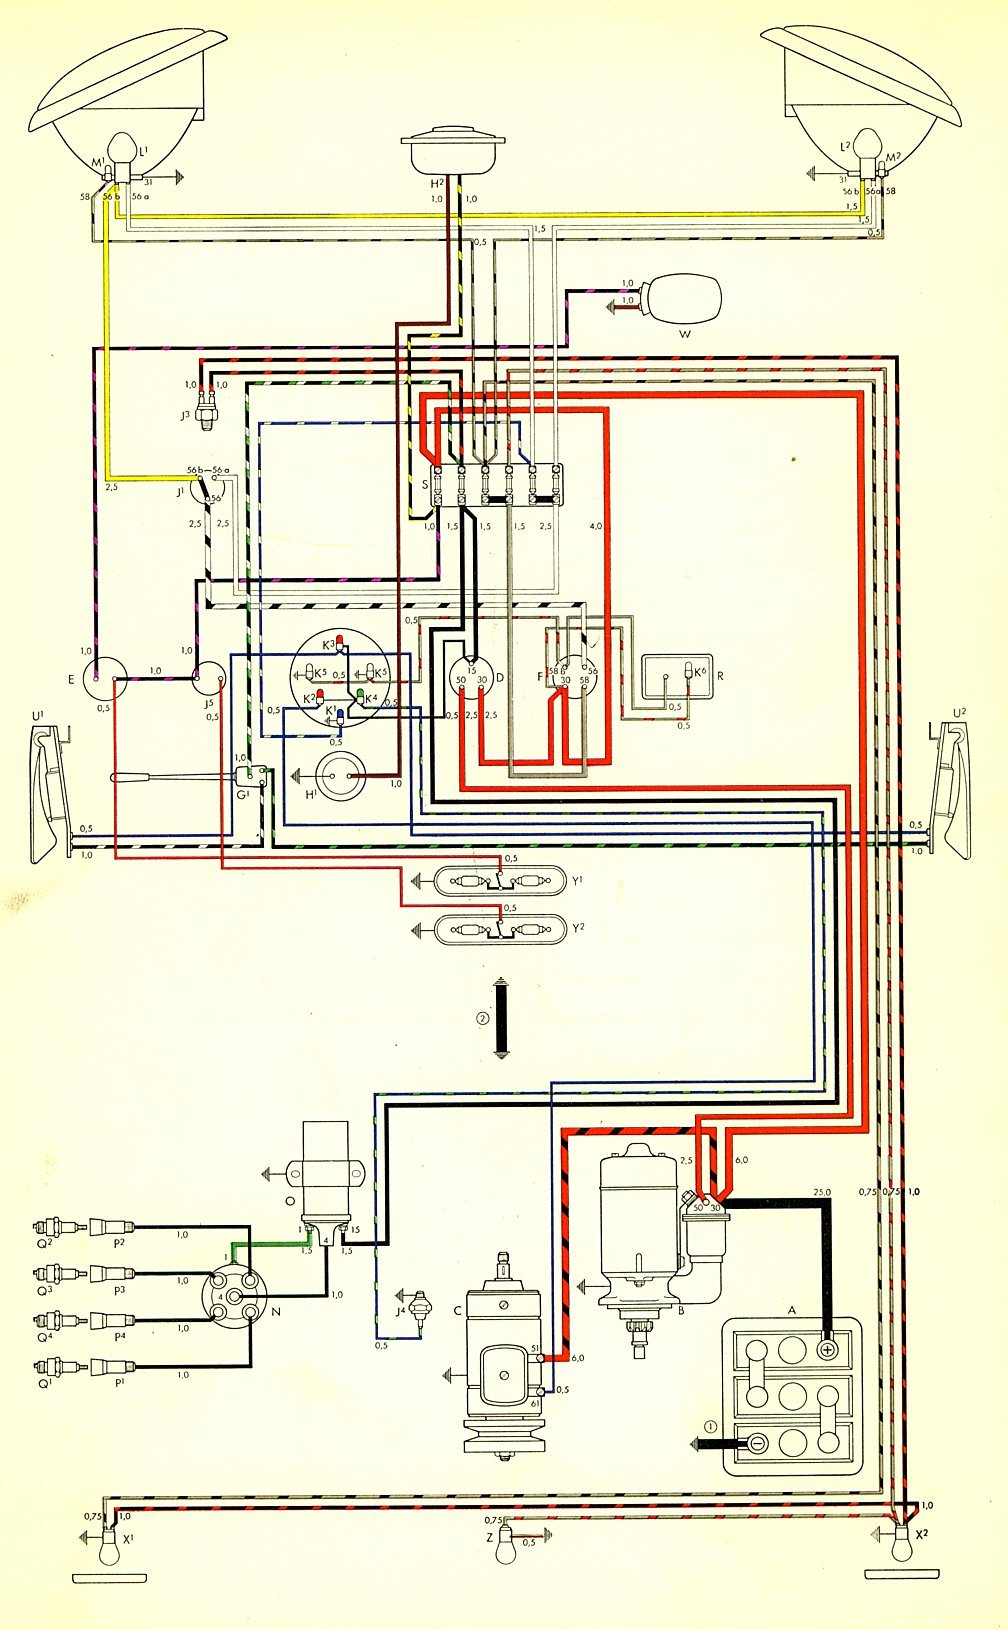 [CSDW_4250]   TheSamba.com :: Type 2 Wiring Diagrams | International Bus Wiring Diagrams |  | The Samba